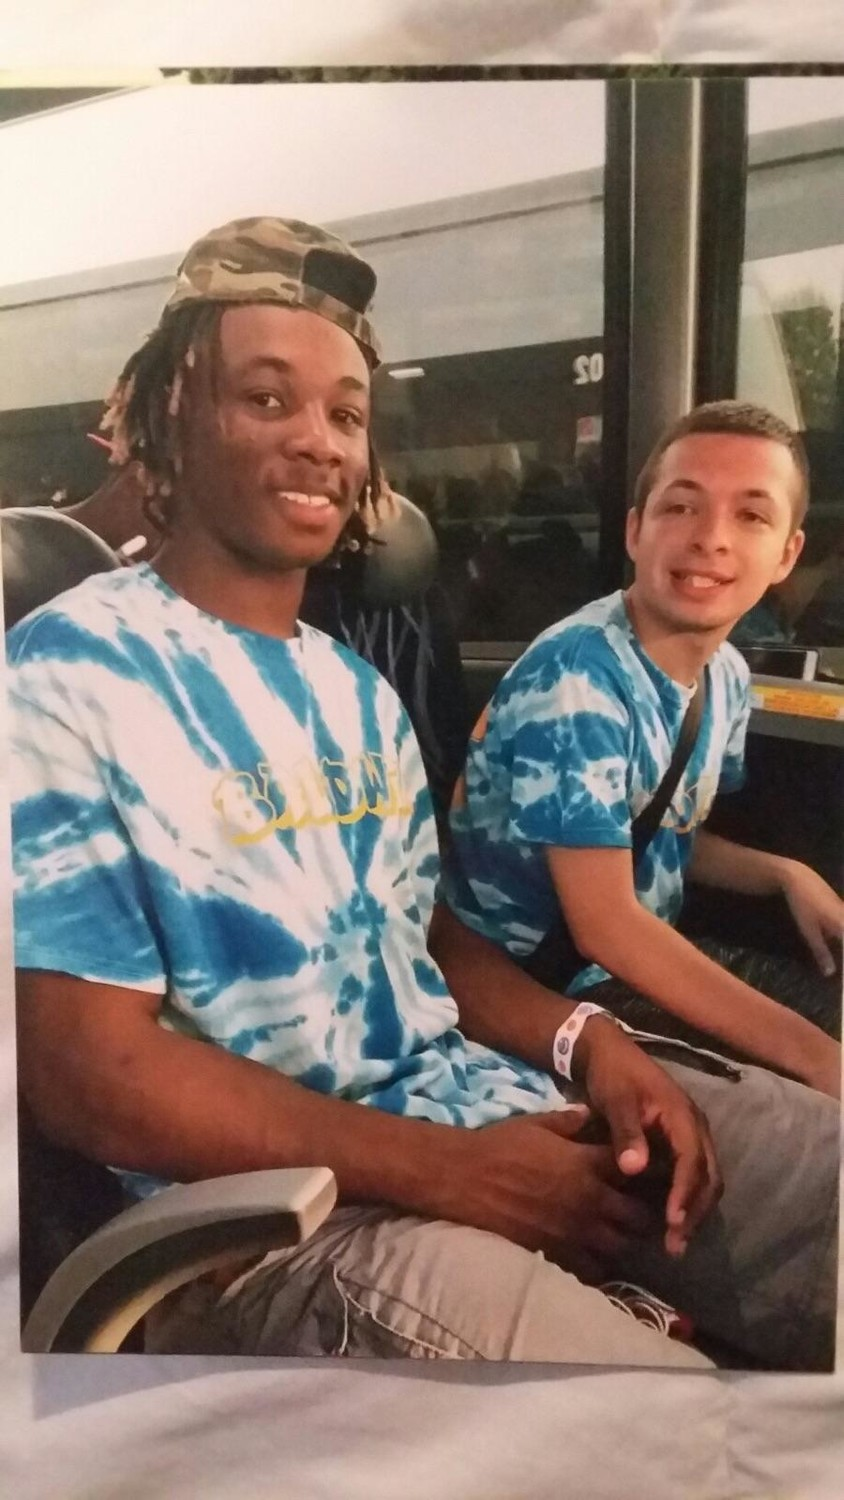 Malcolm, left, and Jesse on the bus to Dorney Park.